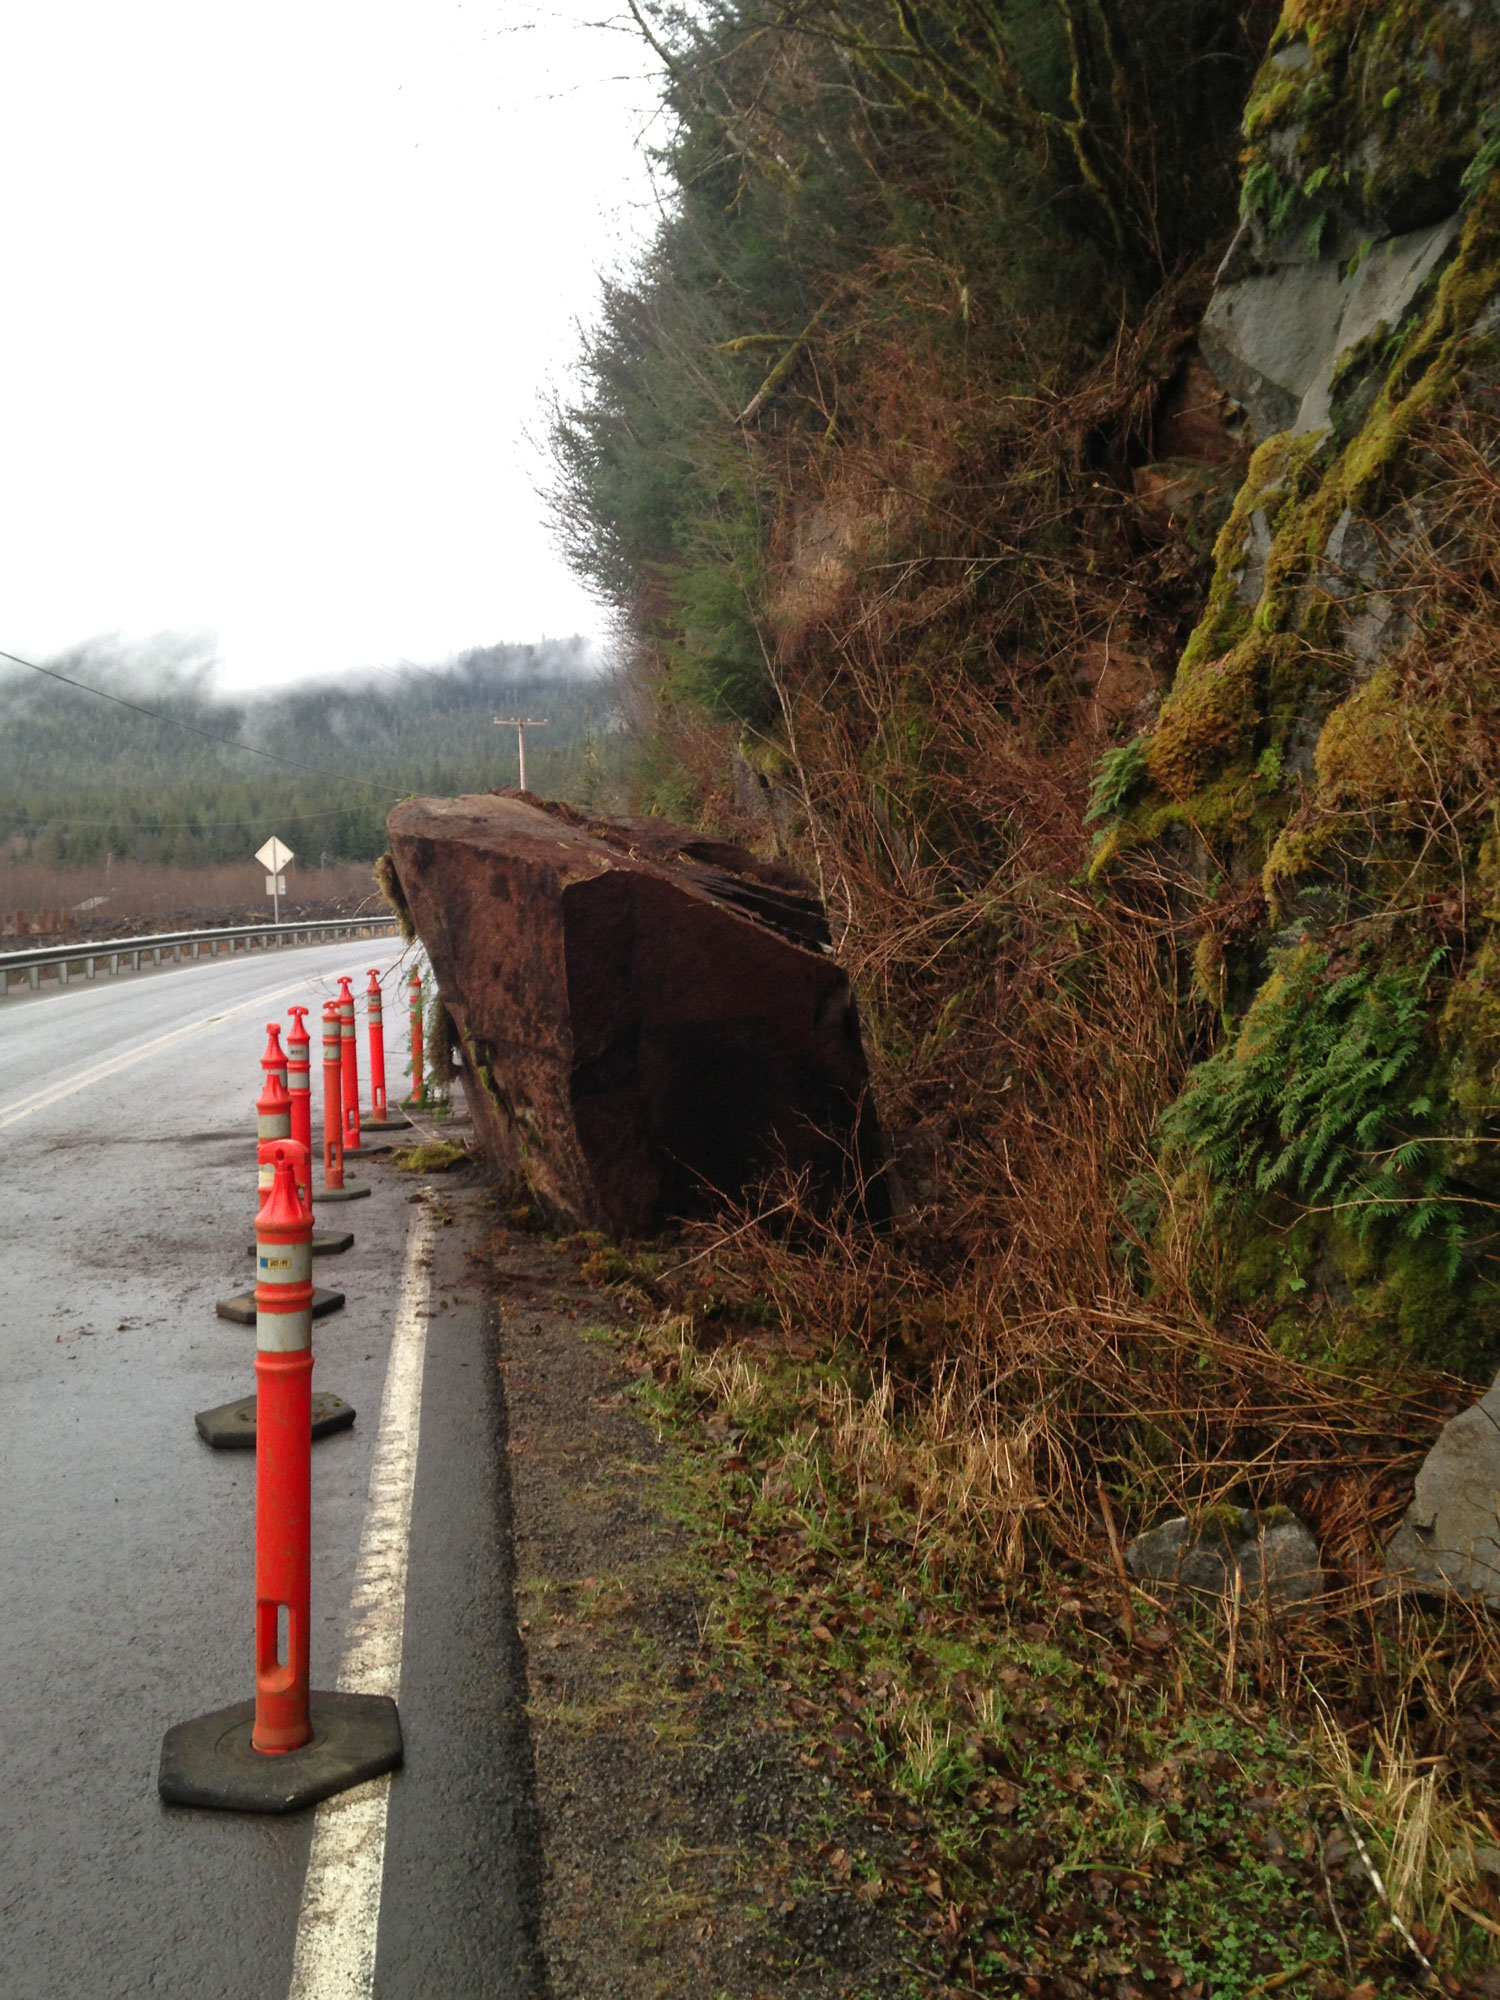 Huge rock on road fell from cliff giant stone huge rock